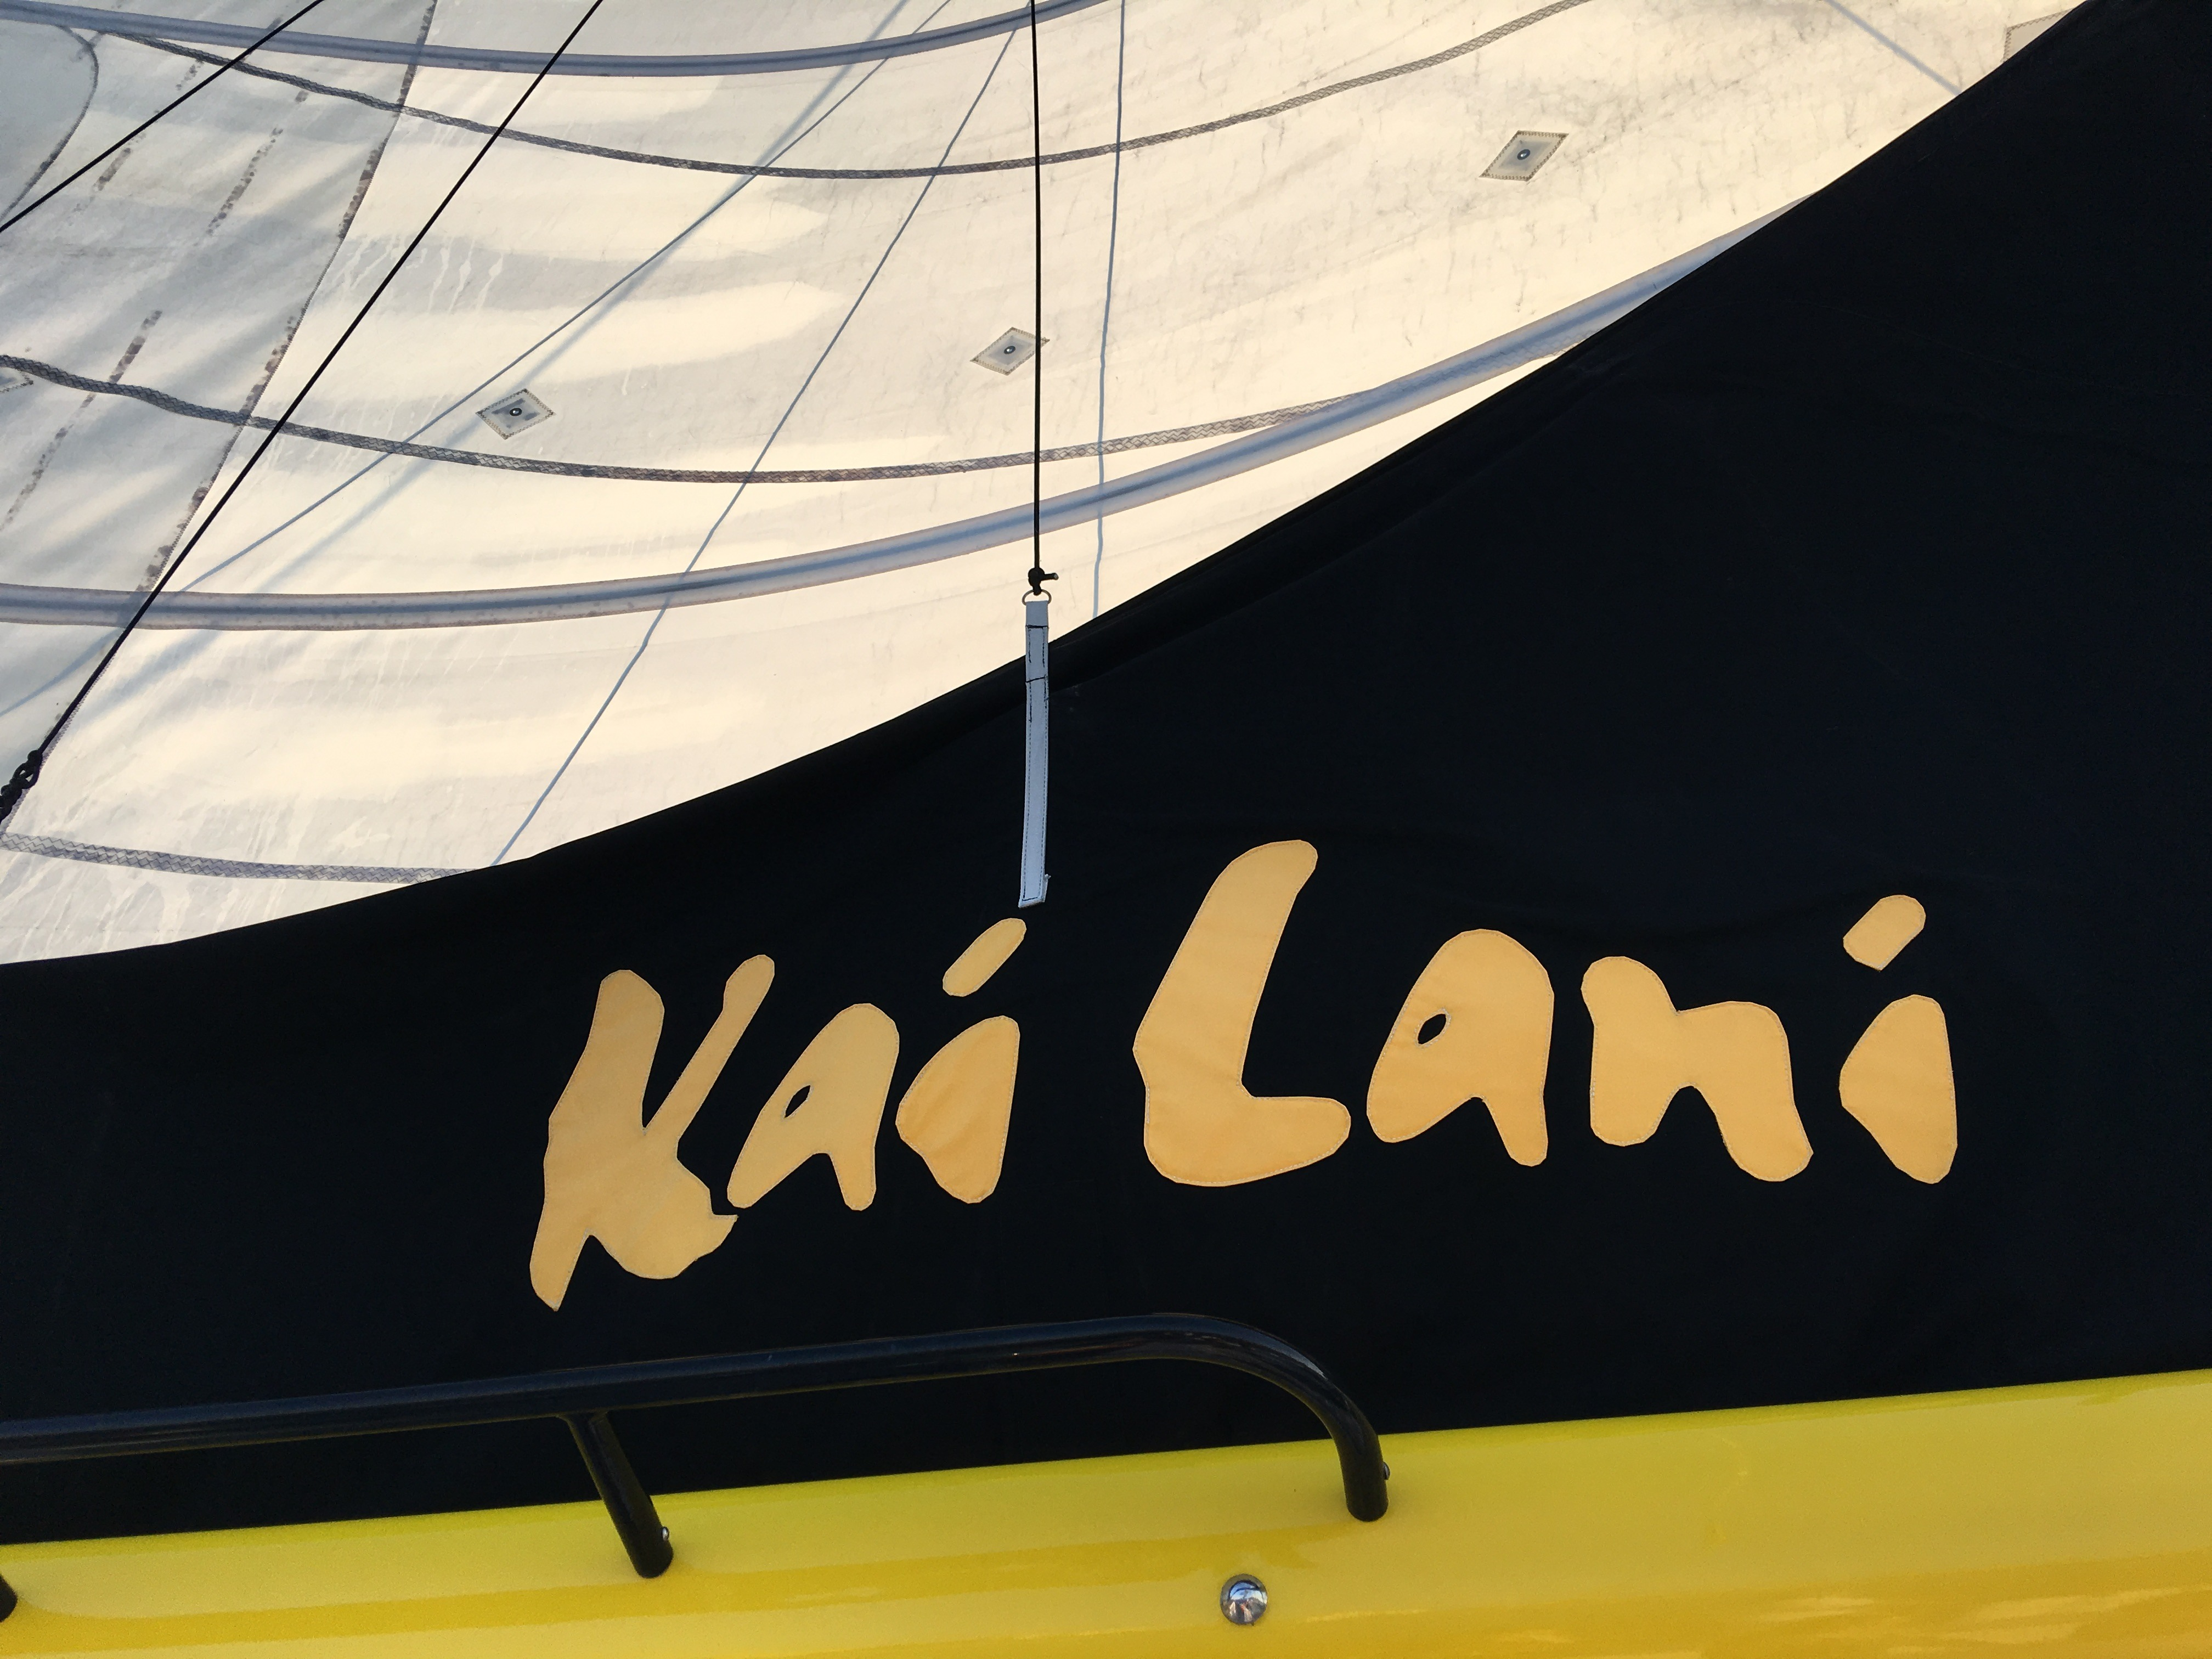 KaiLani Catamaran Clearwater Beach – Bay Area Concierge